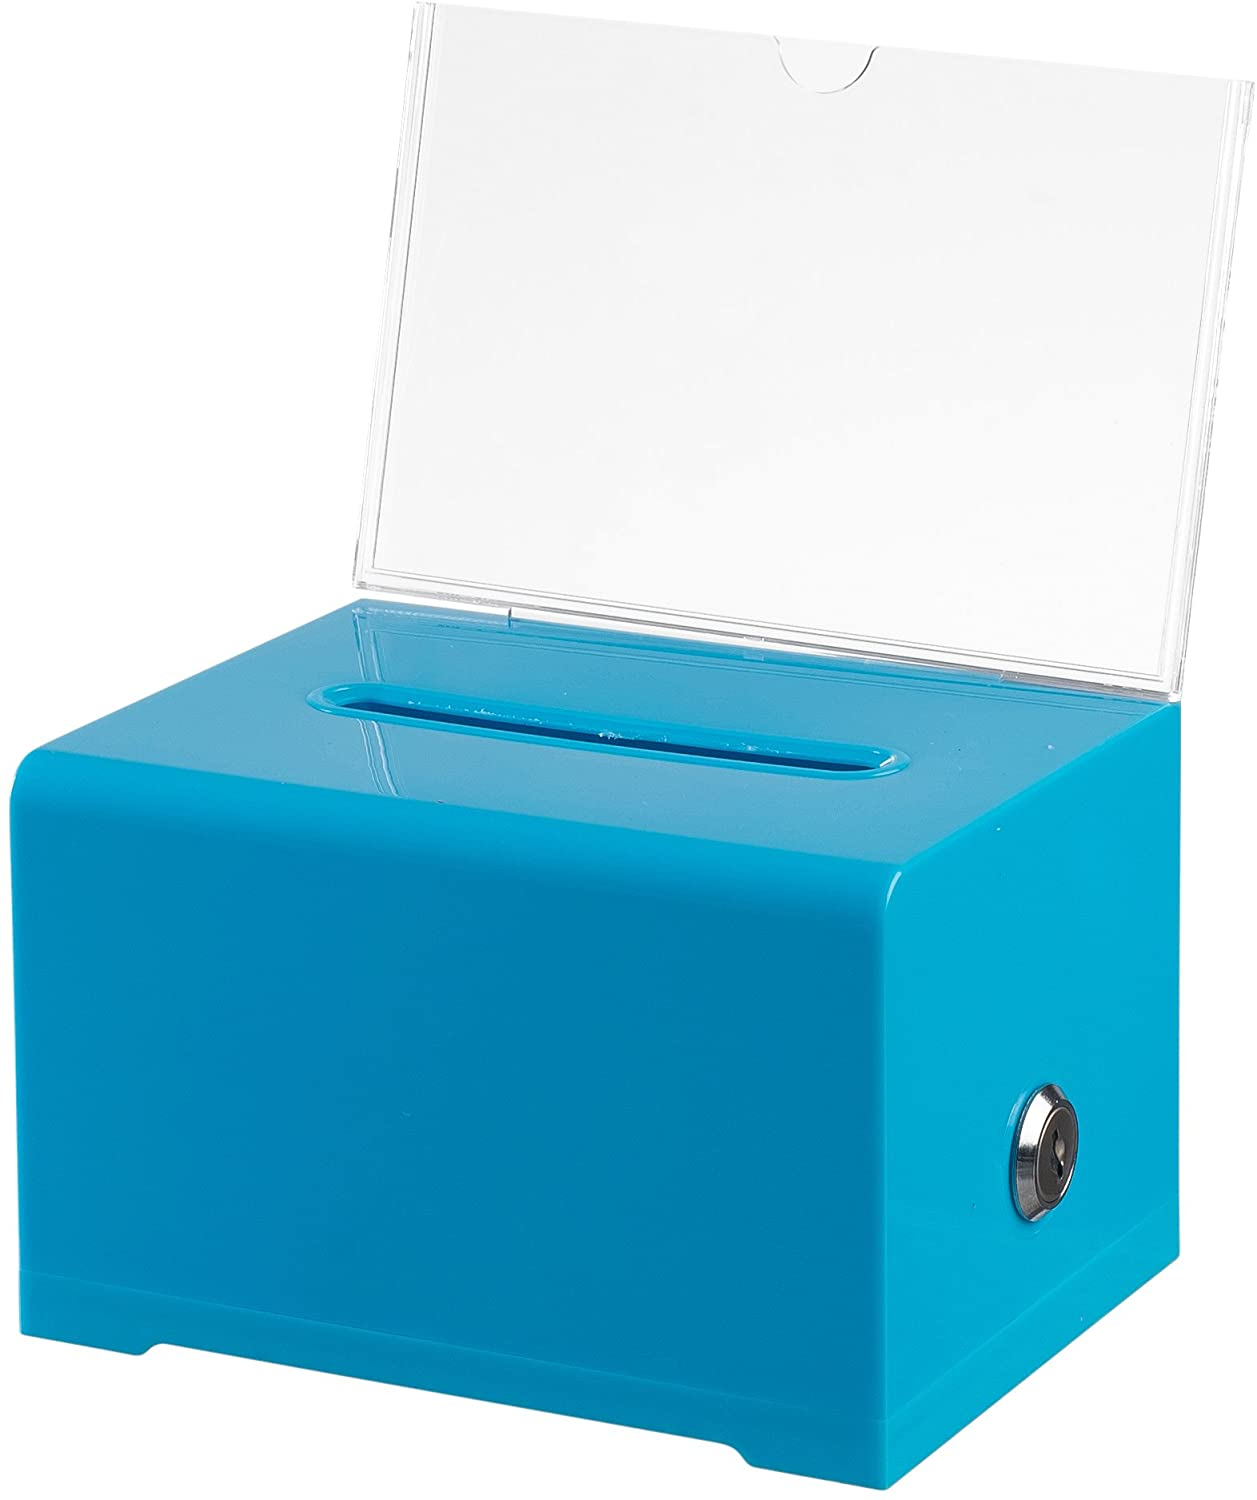 """Adir Acrylic Donation Ballot Box with Lock - Secure and Safe Suggestion Box - Drawing Box - Great for Business Cards (6.25"""" x 4.5"""" x 4"""") - Blue"""